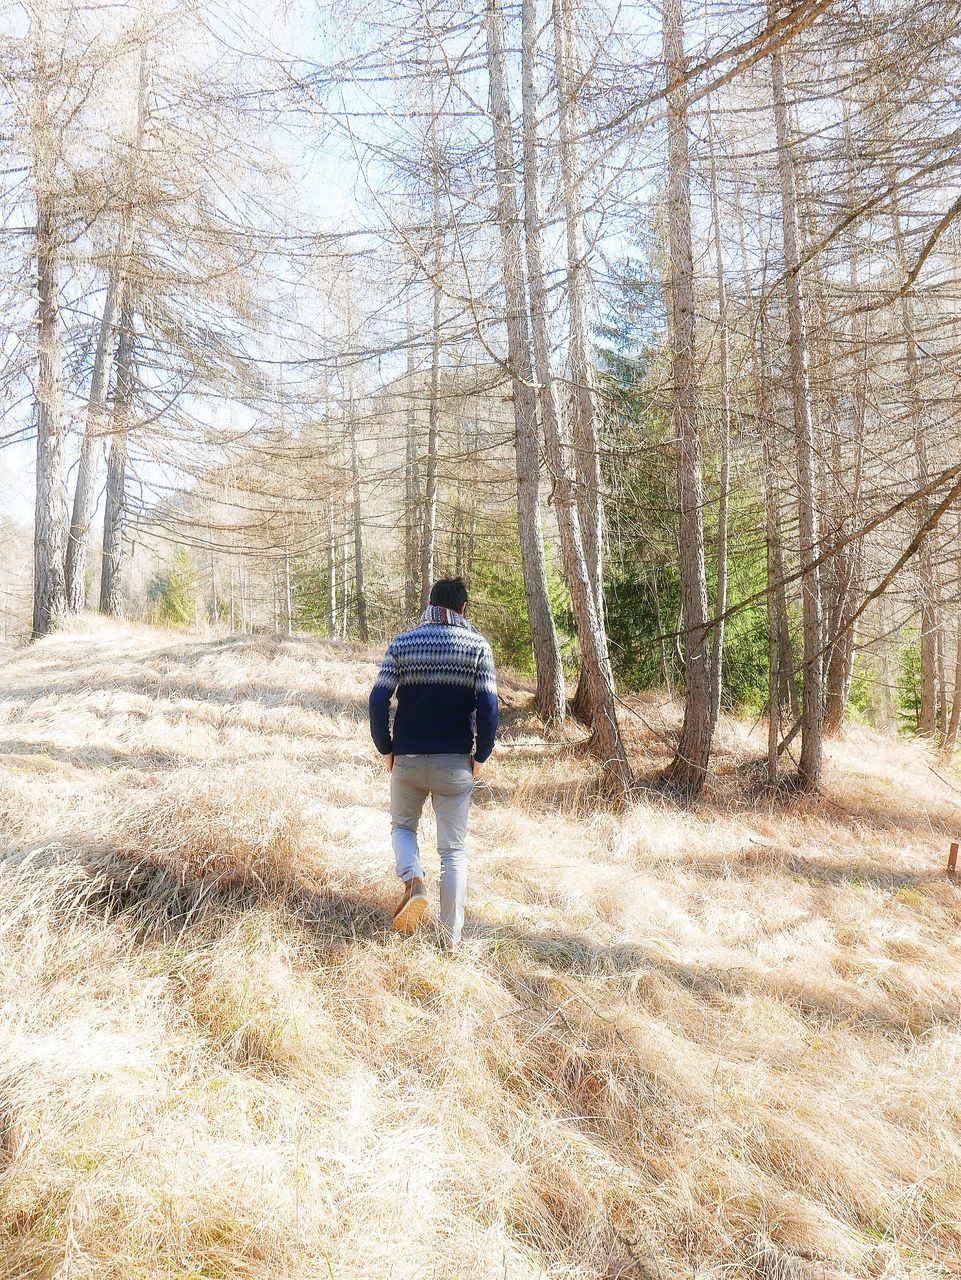 rear view, real people, lifestyles, one person, walking, leisure activity, nature, full length, tree, day, beauty in nature, forest, outdoors, bare tree, sky, adult, adults only, people